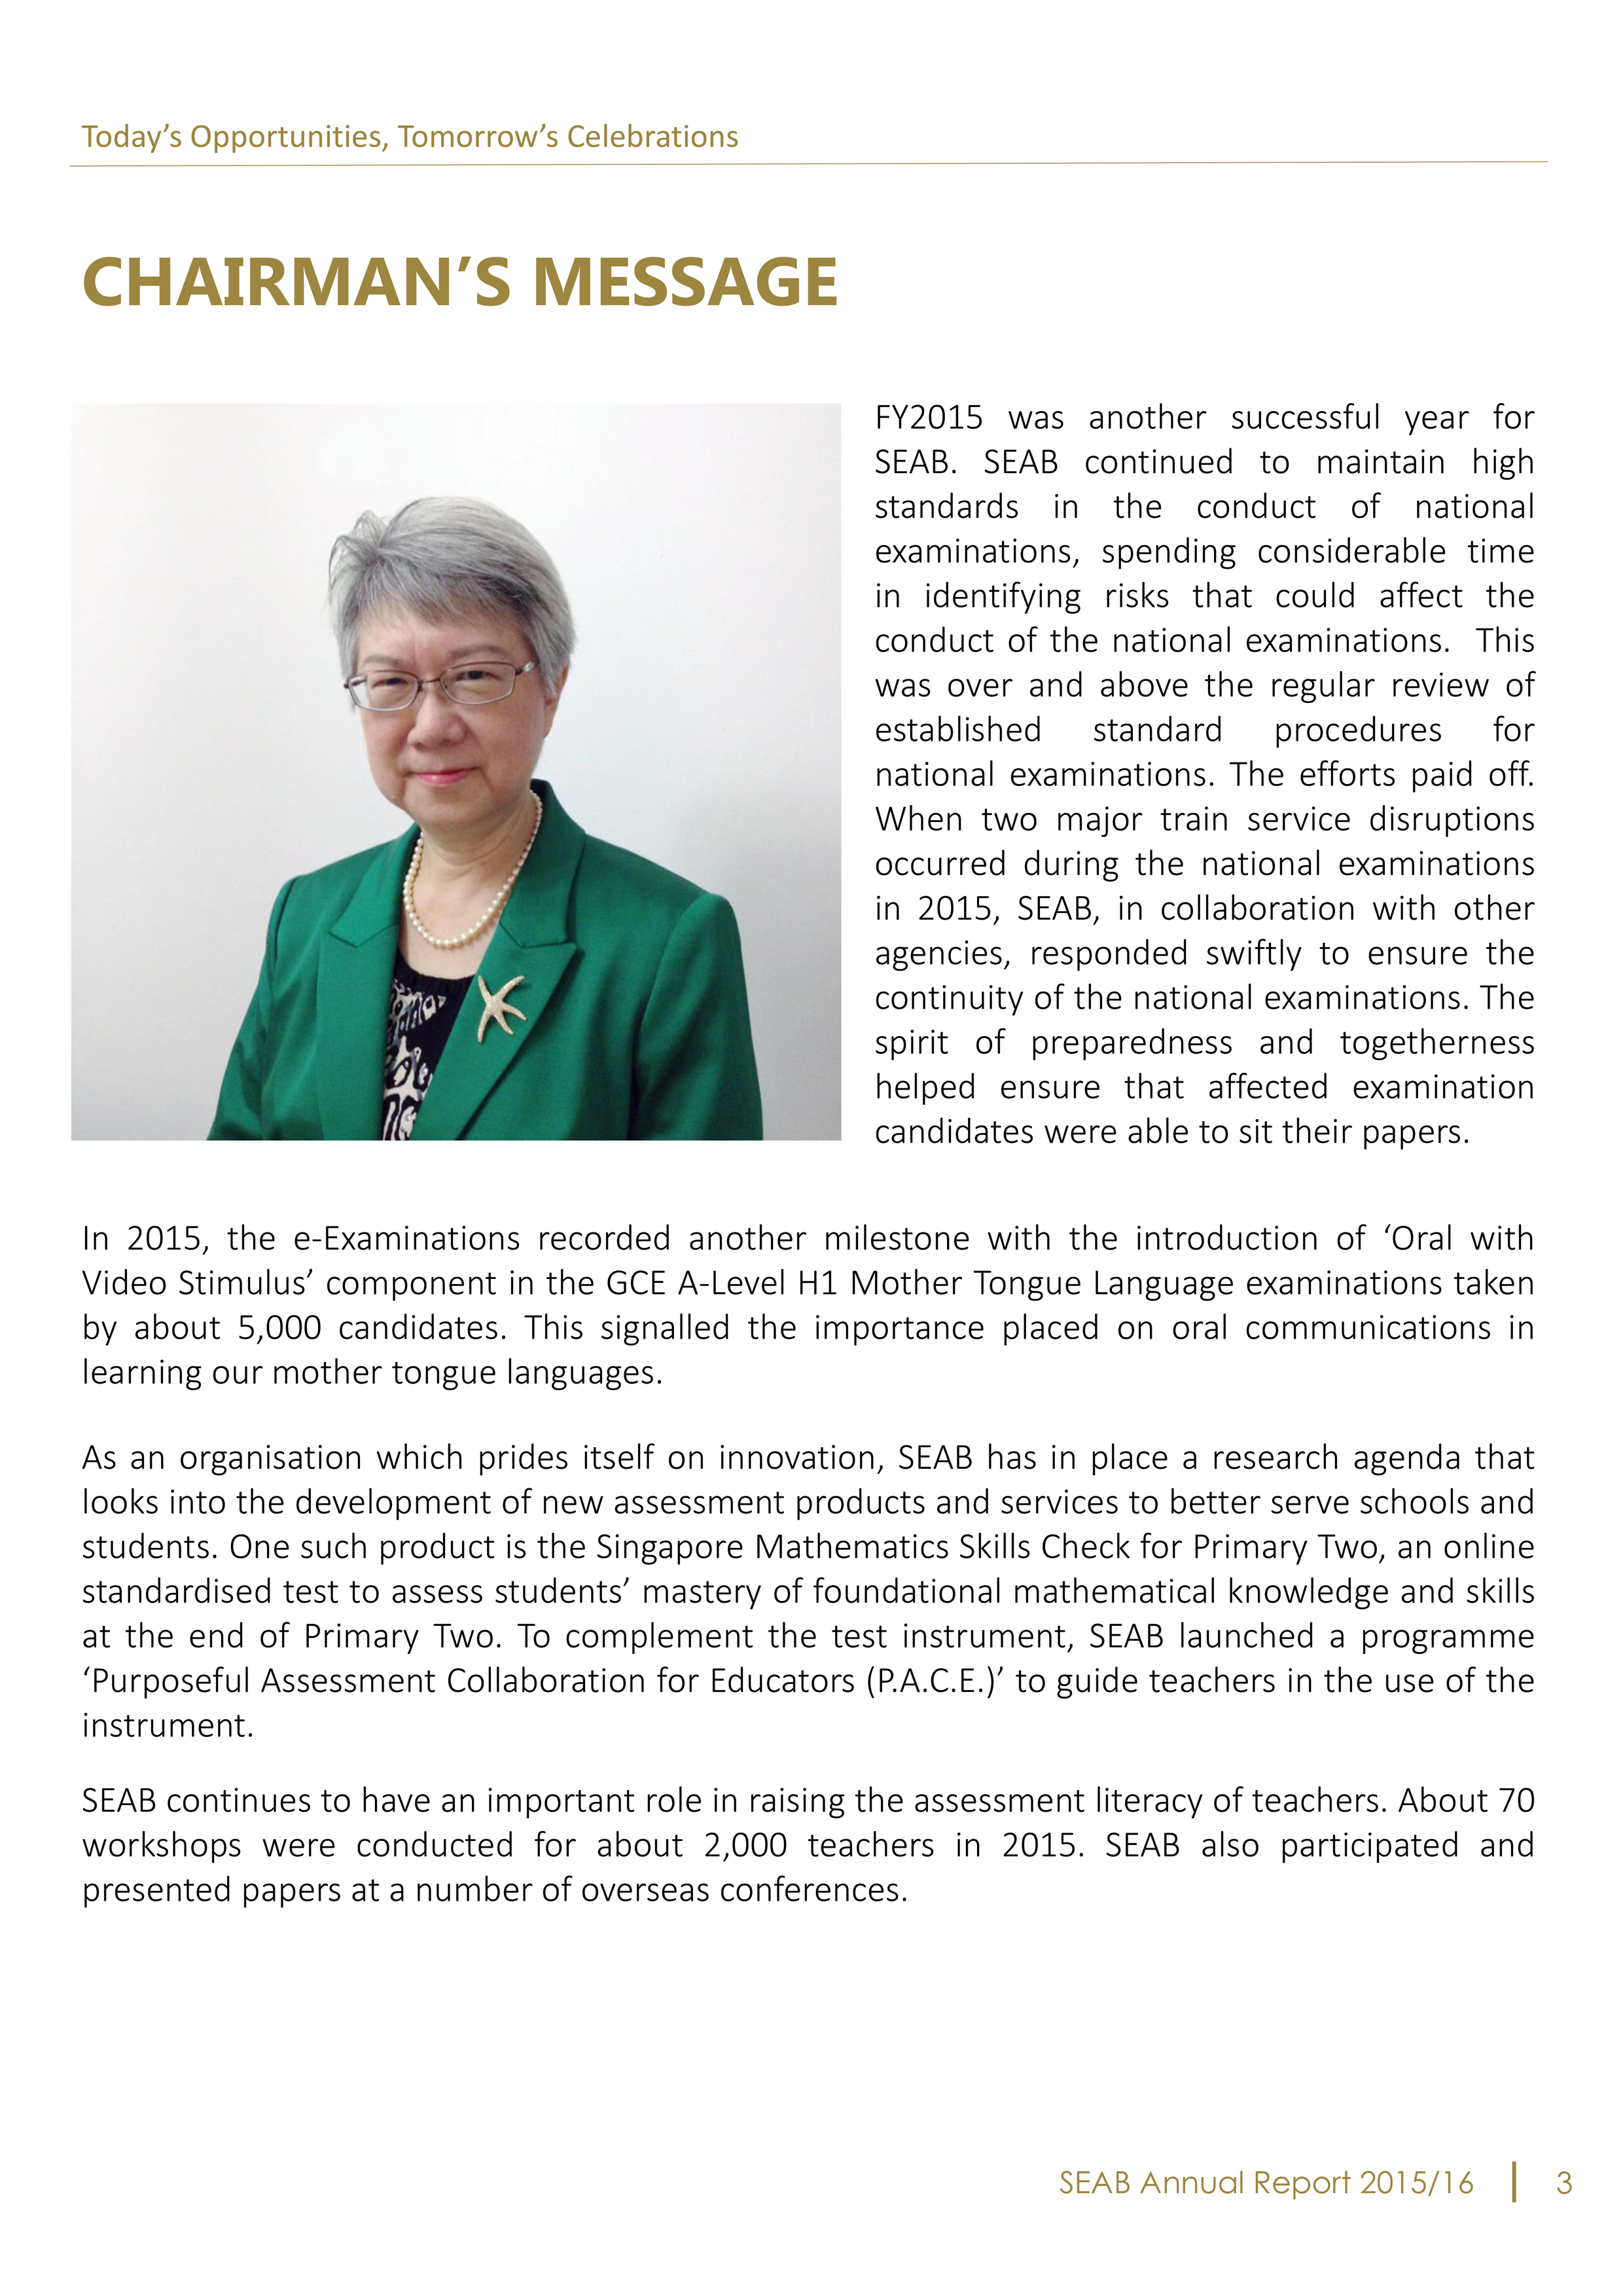 Seab Annual Report 2015 2016 Chairman S Message